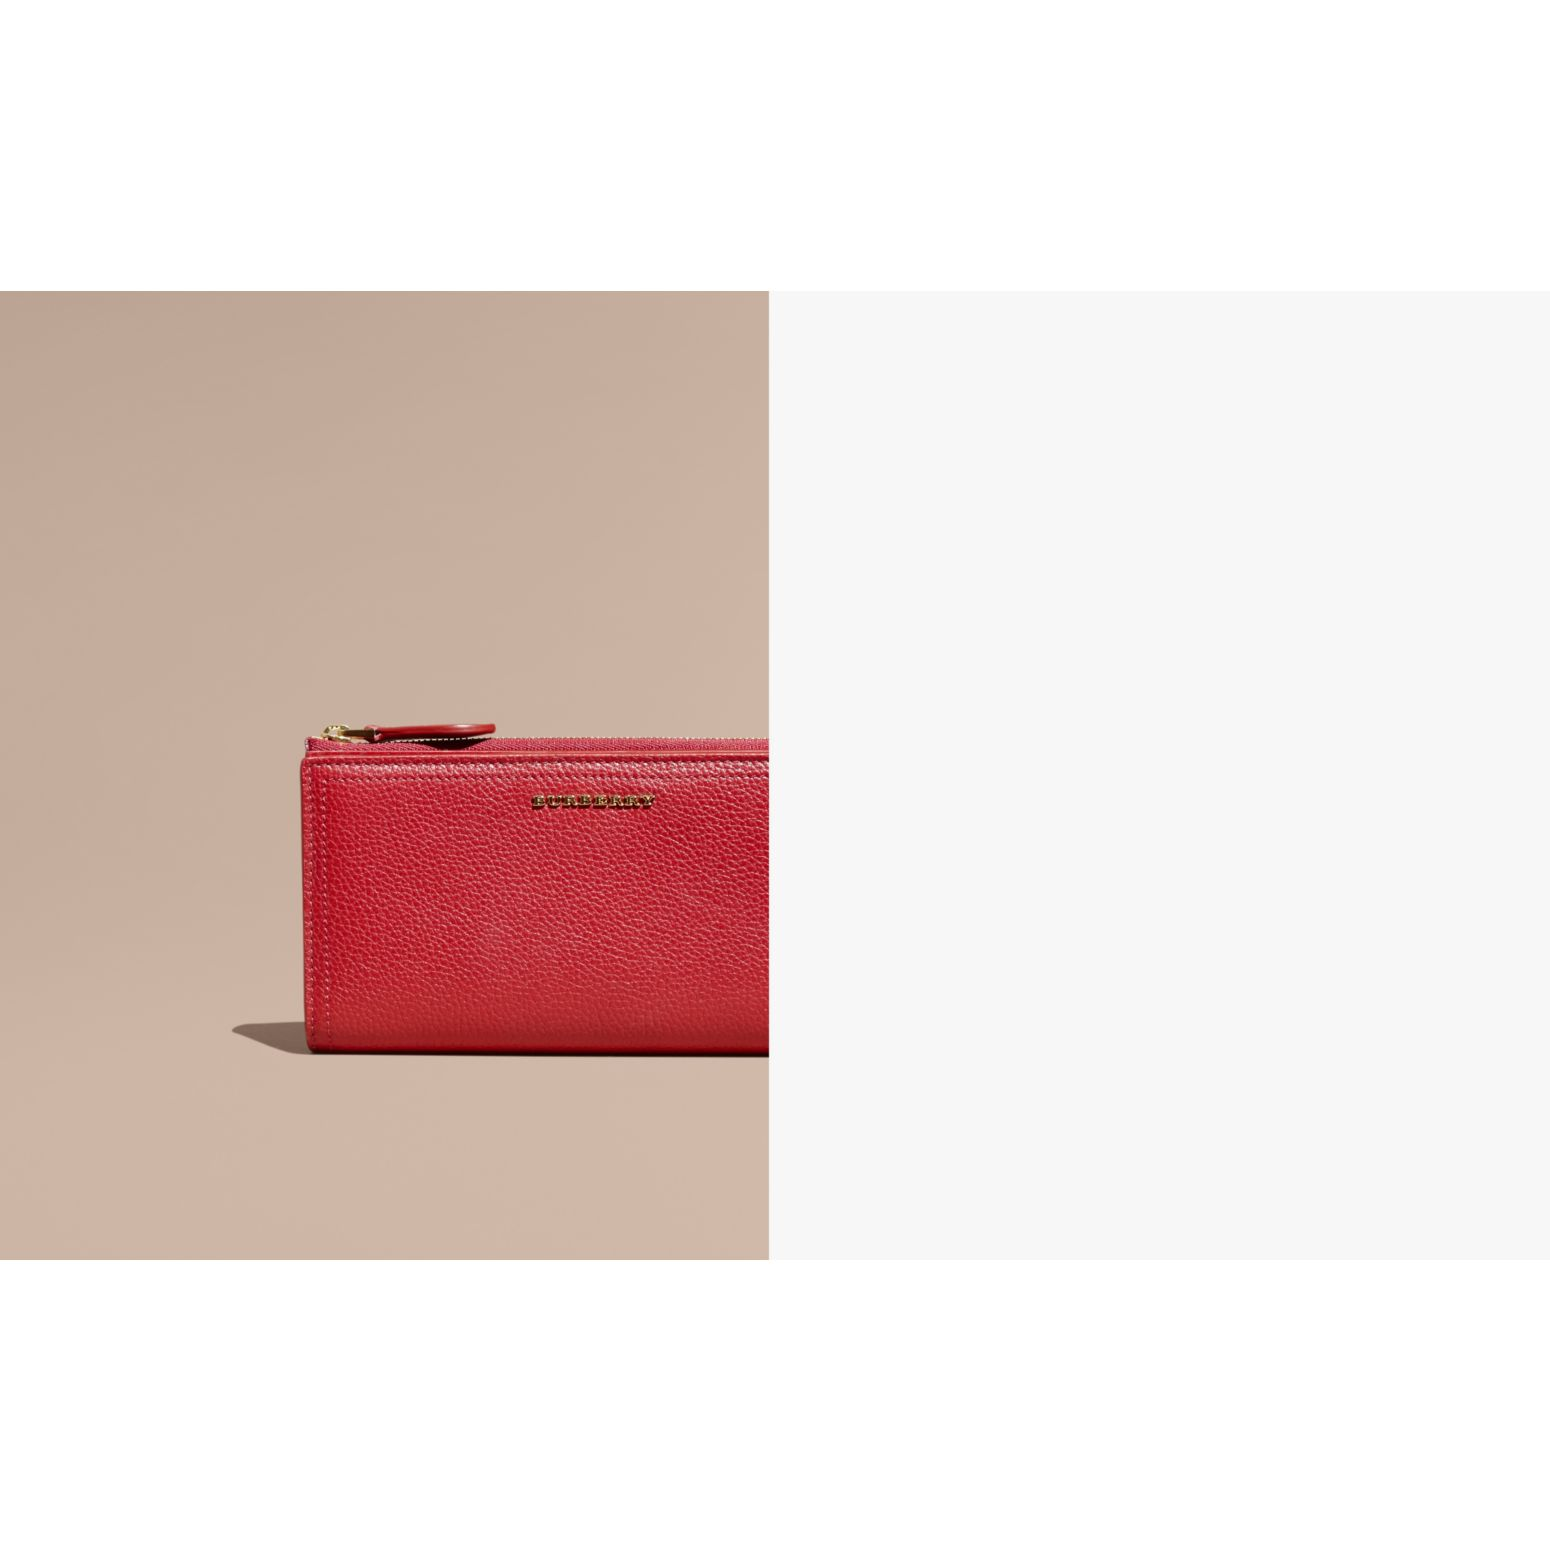 Grainy Leather Ziparound Wallet in Parade Red - Women | Burberry Australia - gallery image 1